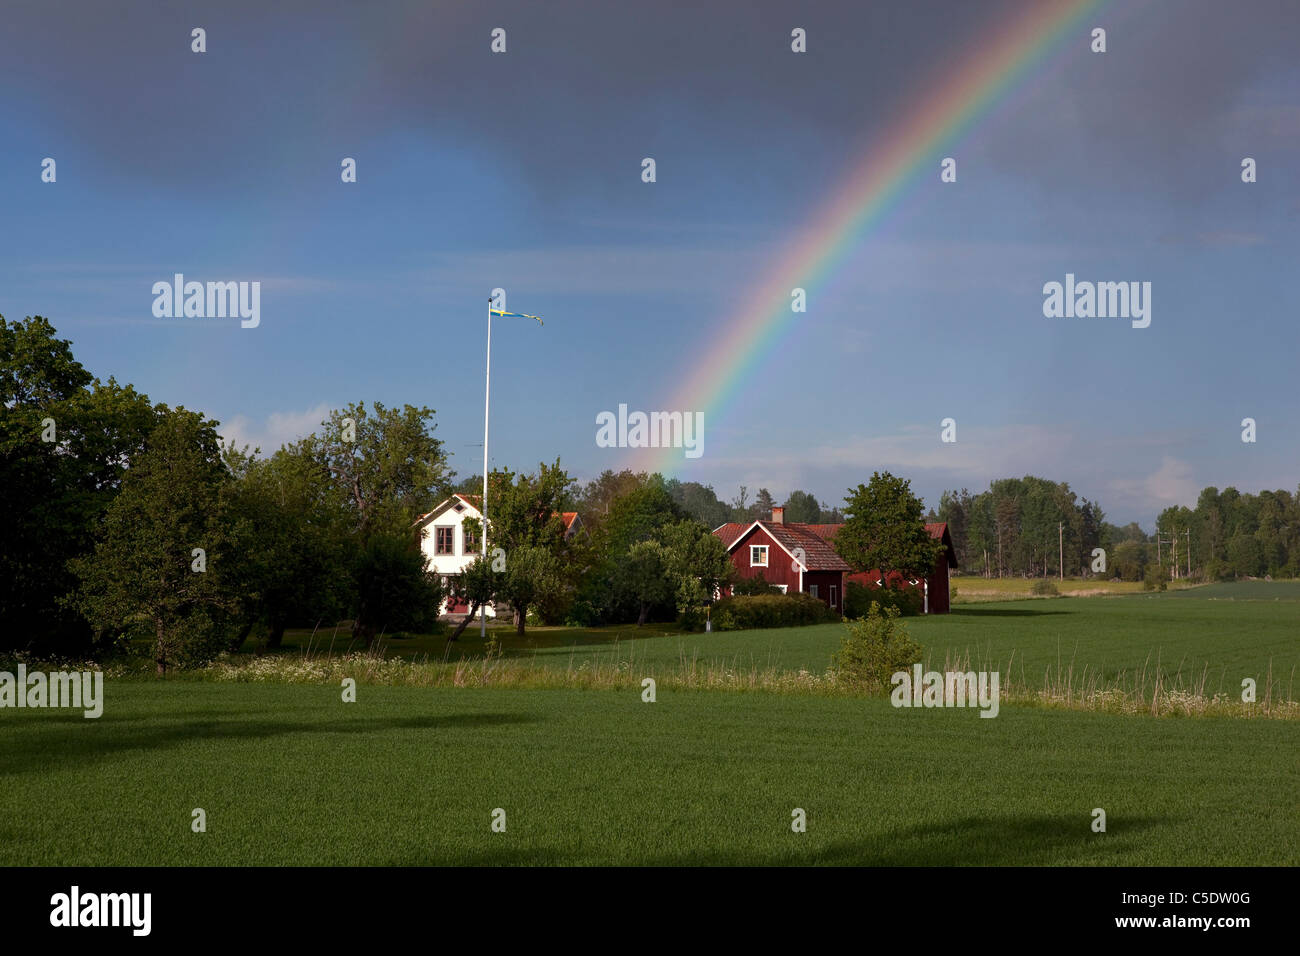 Rainbow behind country houses and trees with fields in foreground - Stock Image